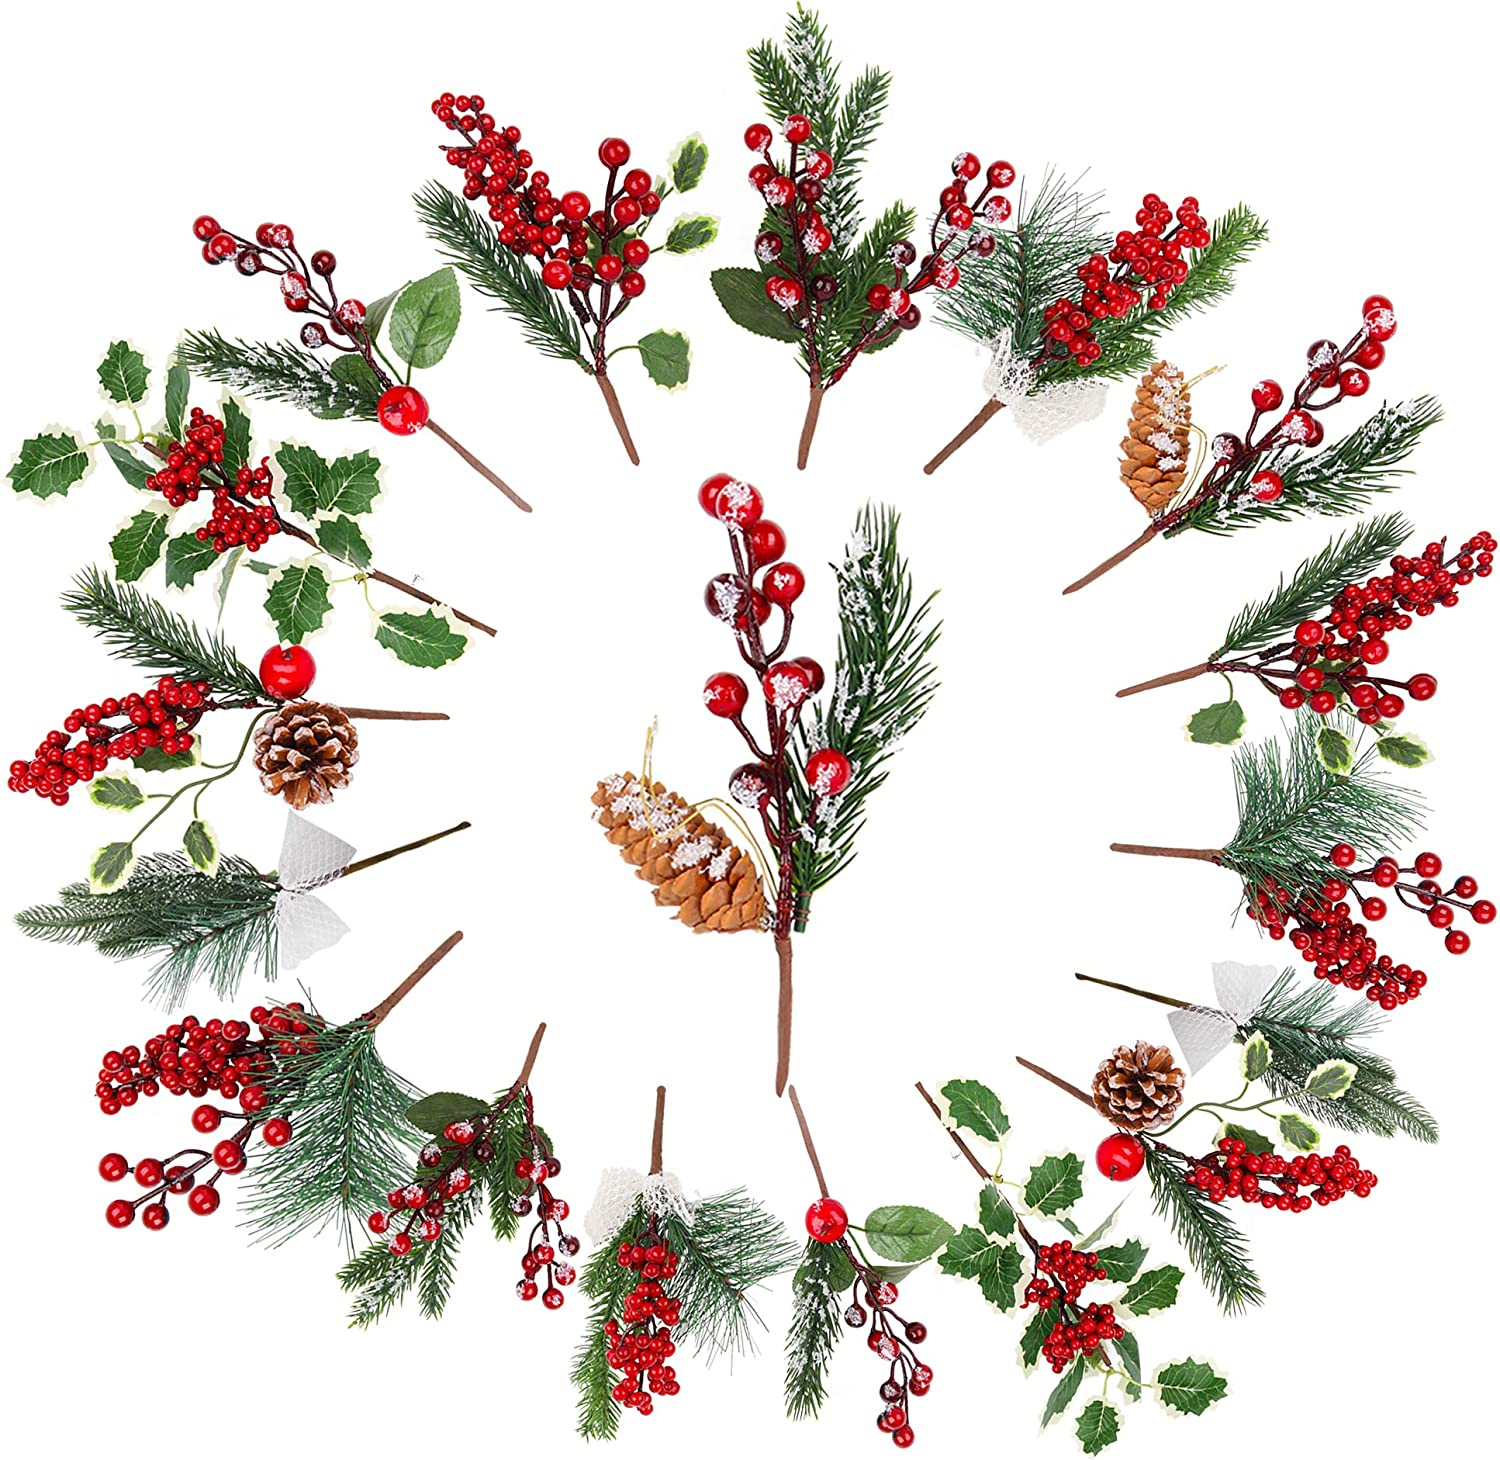 Christmas Pine Cone Picks Decorations - 18 Pack Artificial Christmas Picks and Sprays Red Berry Stem Branches with Holly Leaves for Xmas Tree Christmas Wreath Winter Holiday Wedding D¨¦cor